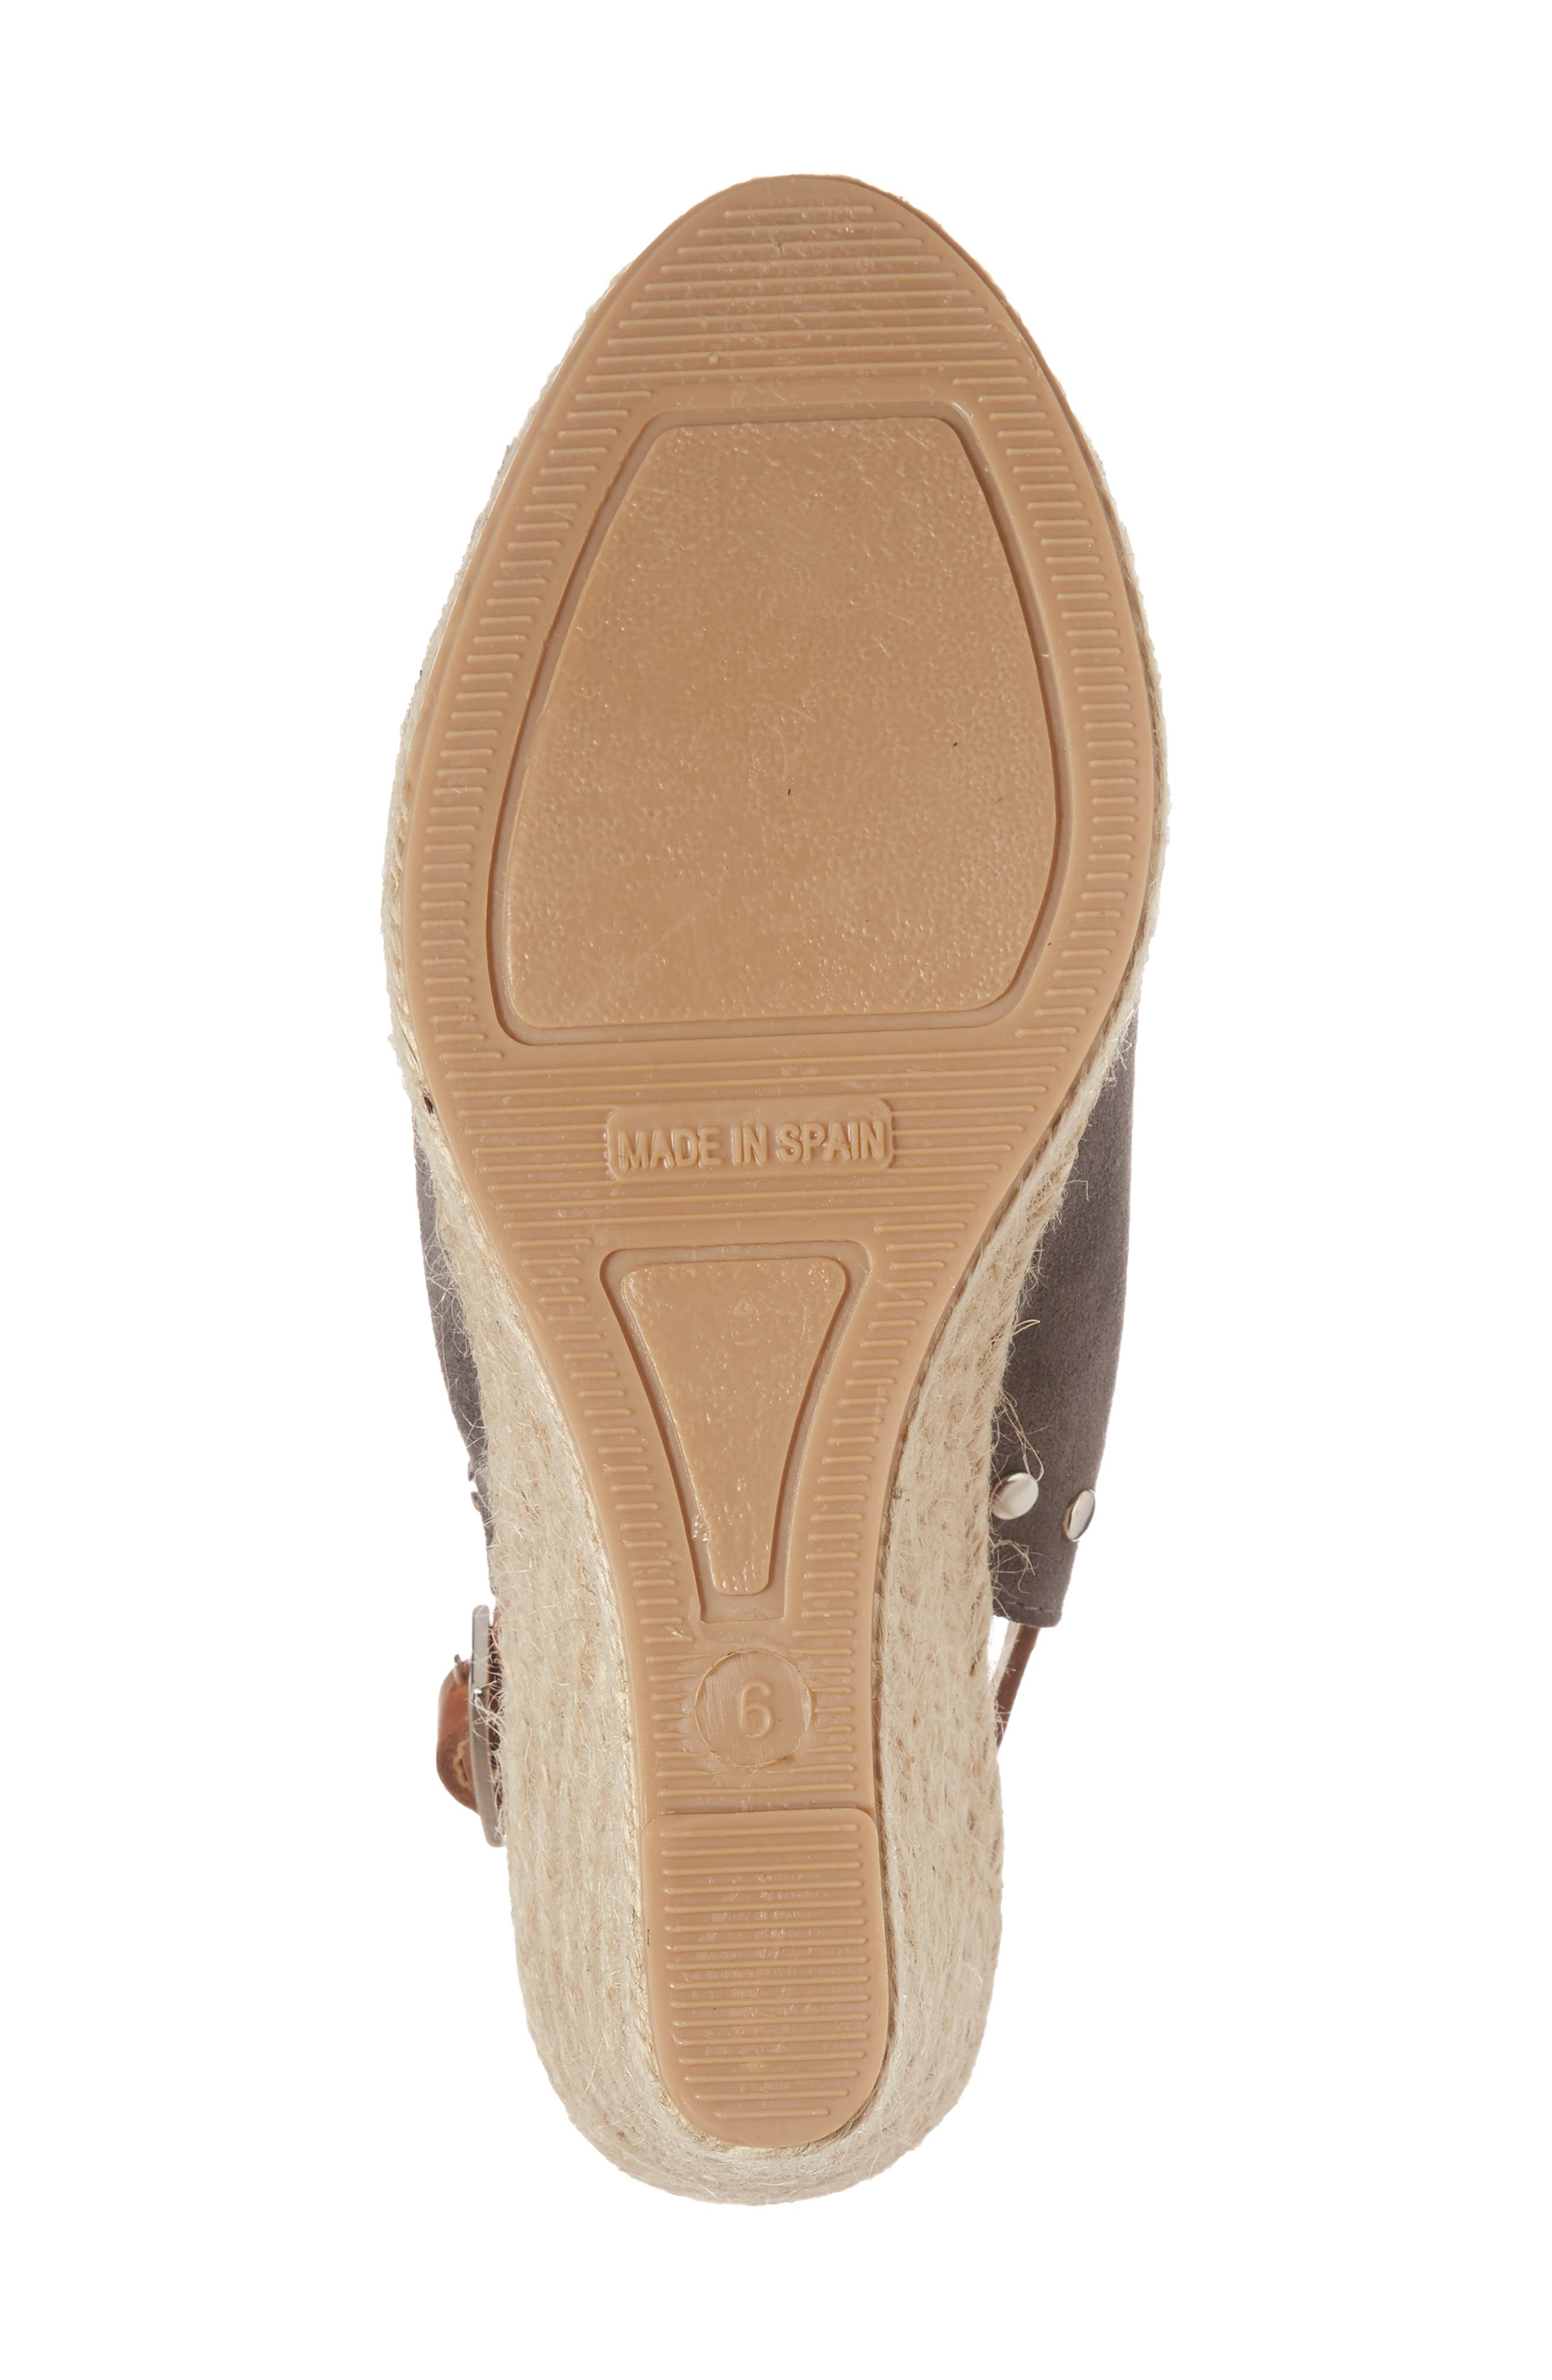 Rockstar Espadrille Wedge Sandal,                             Alternate thumbnail 6, color,                             CHARCOAL SUEDE